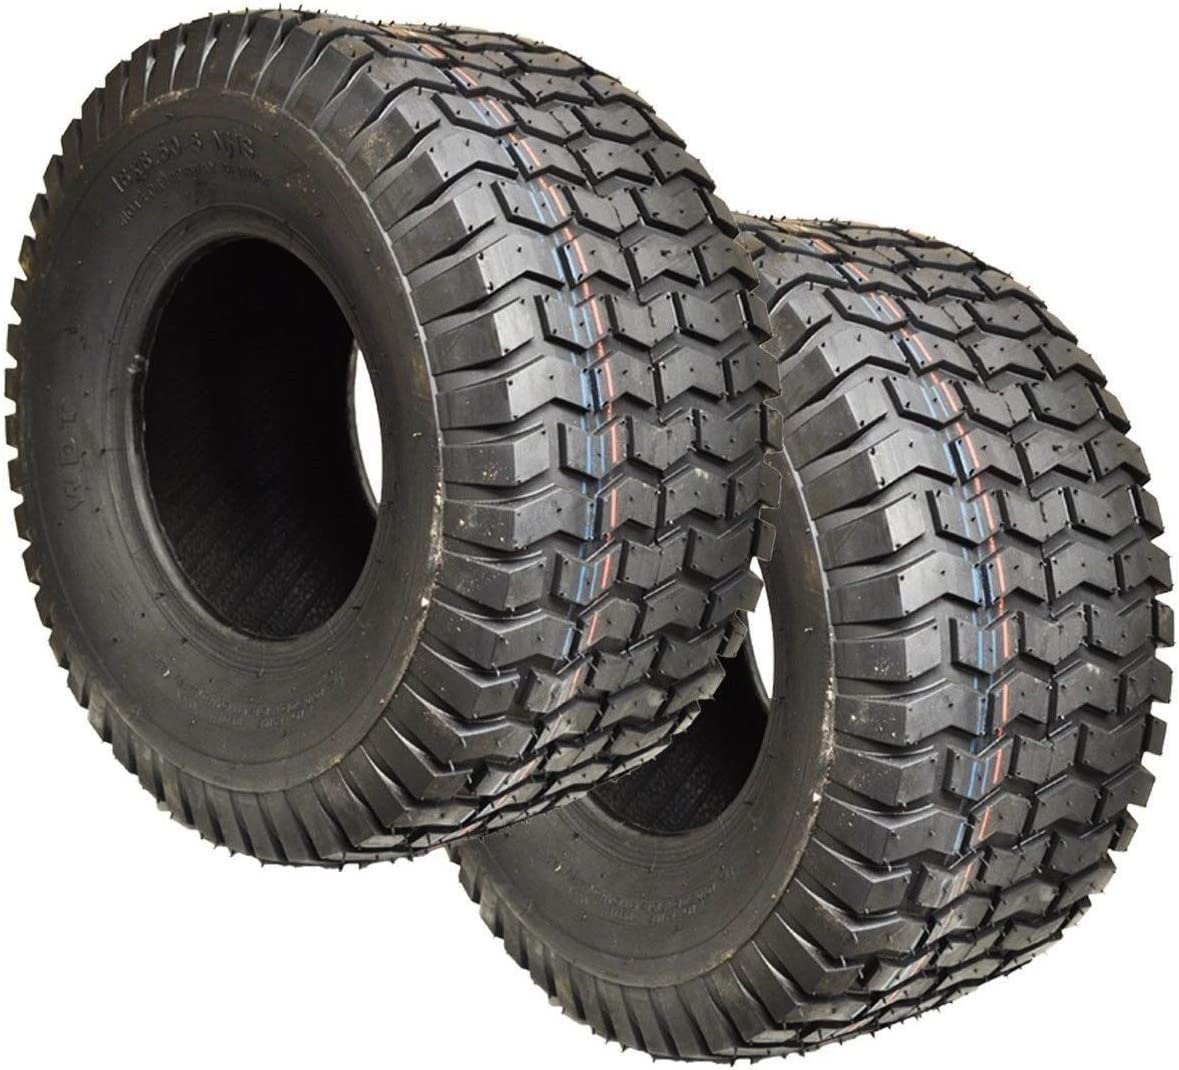 TWO 23x10.50-12 6ply Rated 23x10.50x12 Tractor Lug Ag Tire 23x1050-12 2 Tires Pair